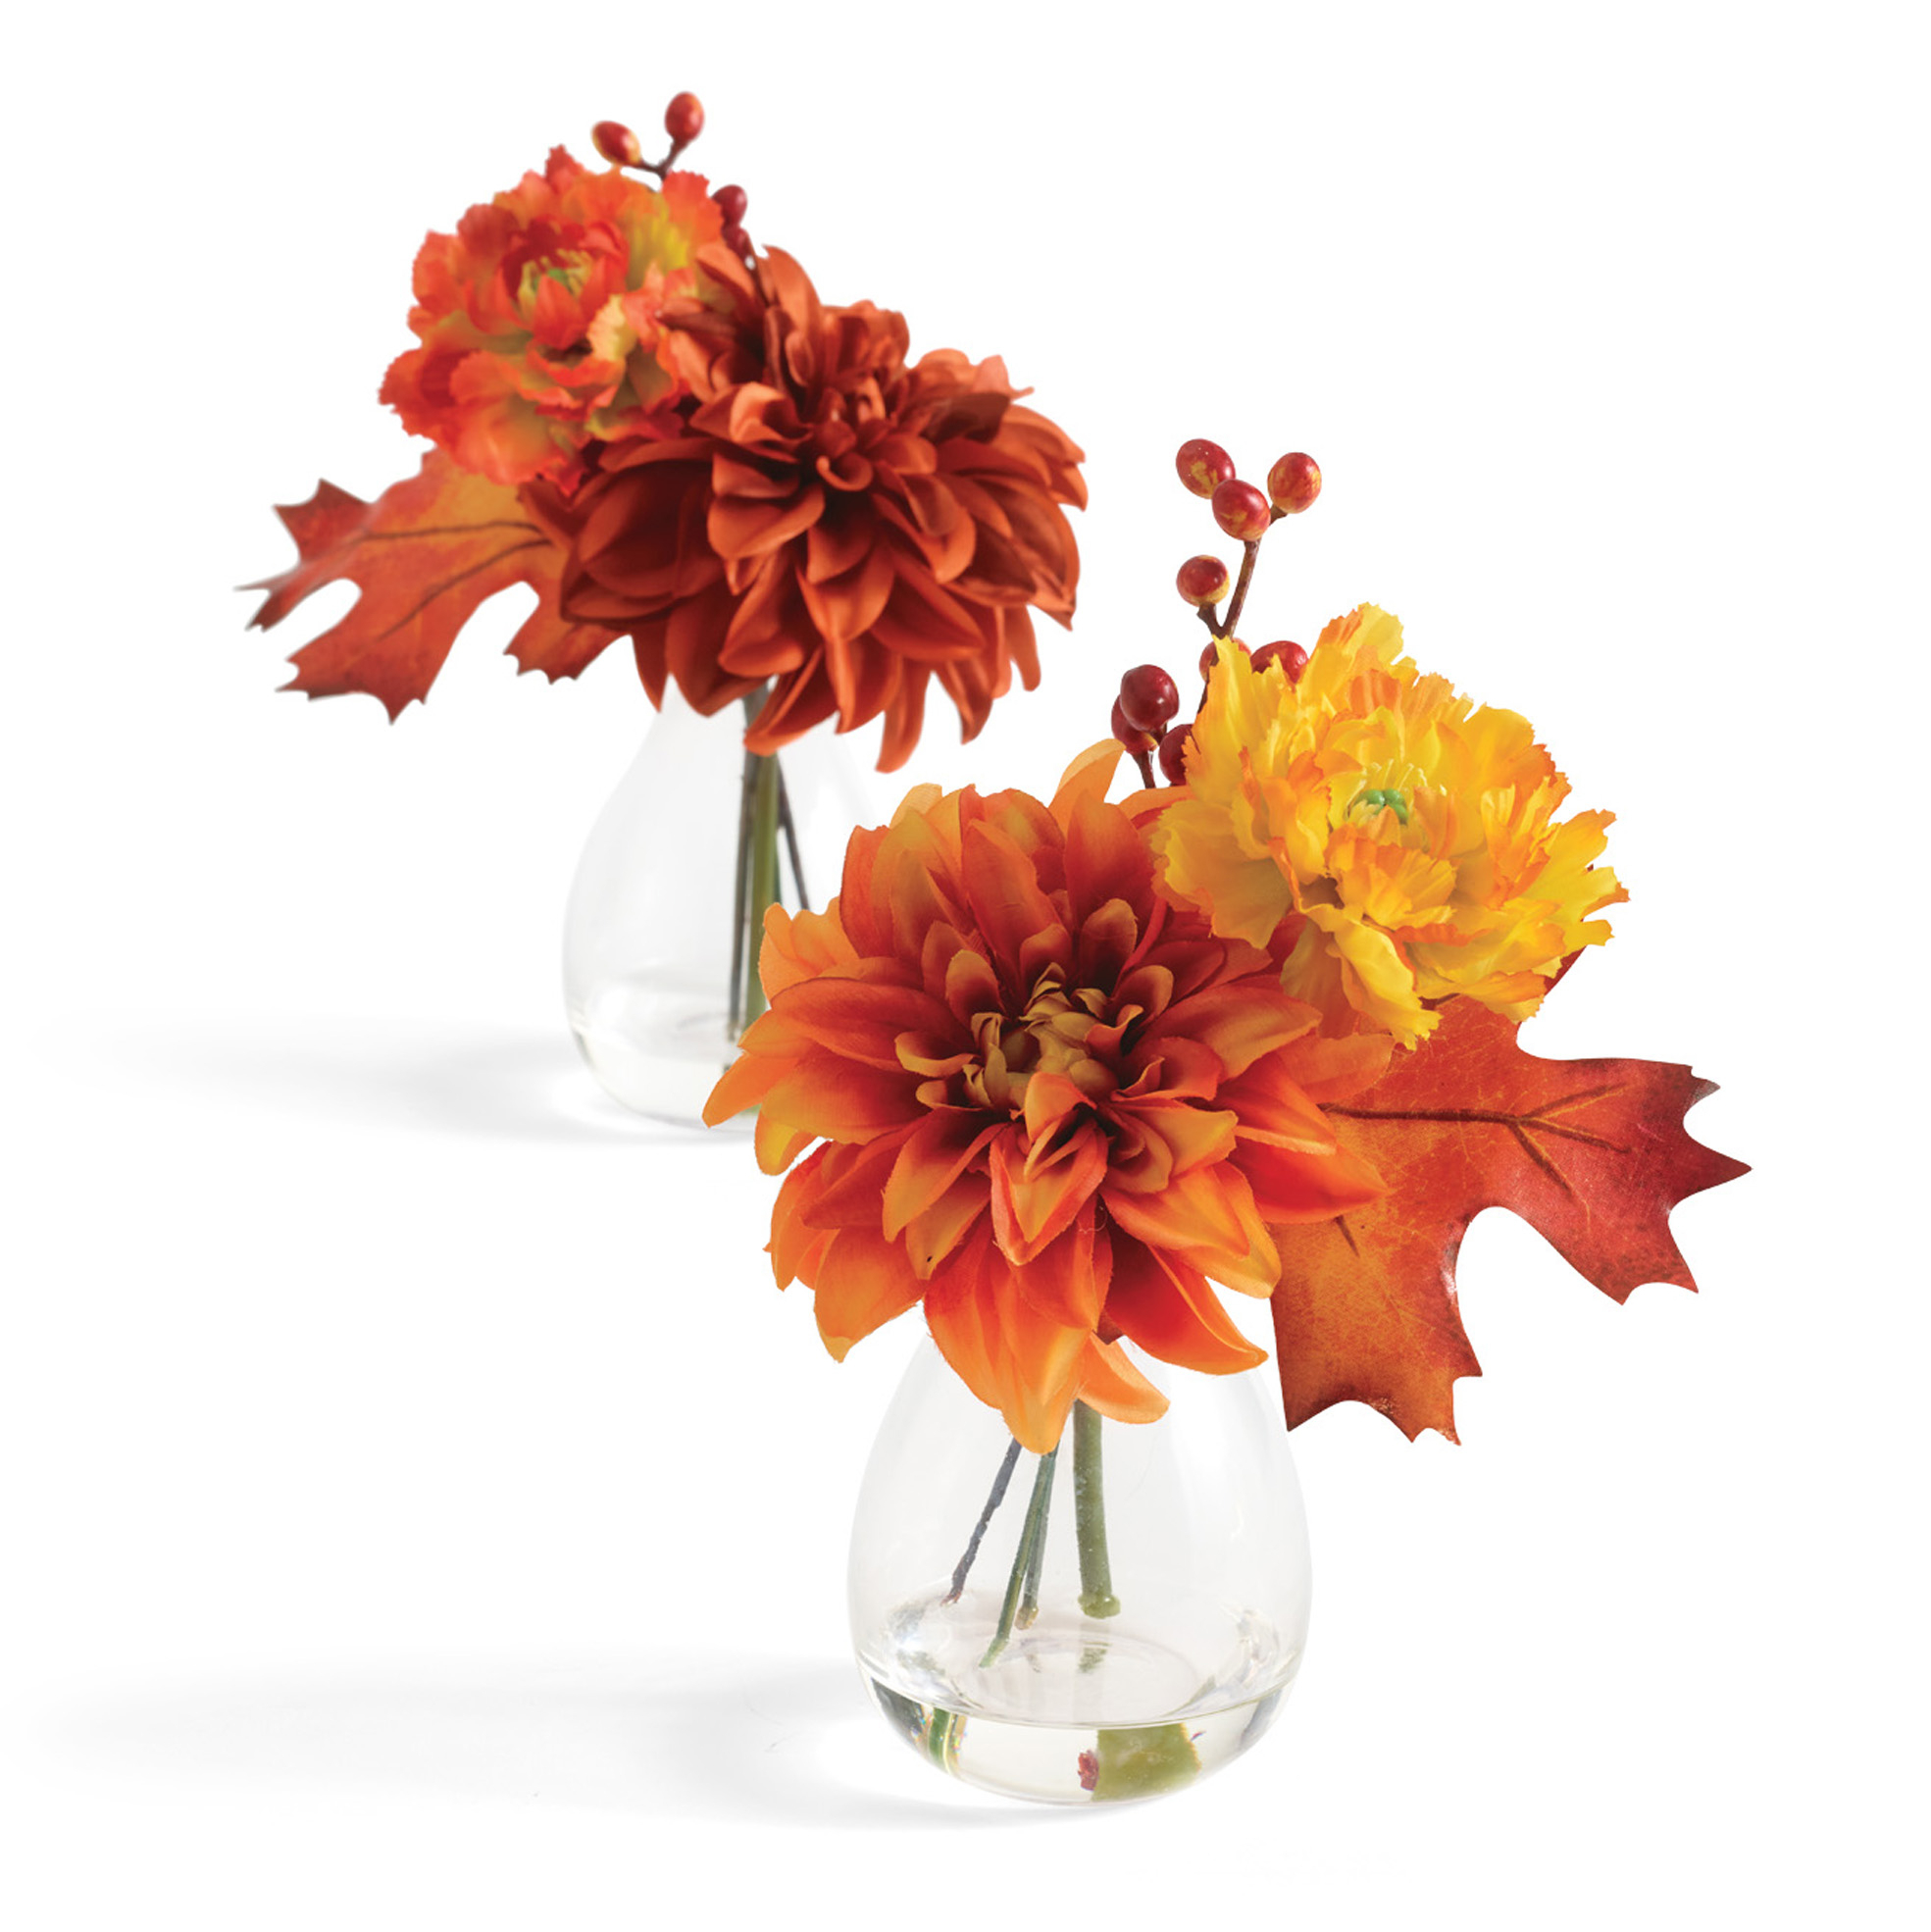 Sunset Dahlia Bouquets, Set Of 2